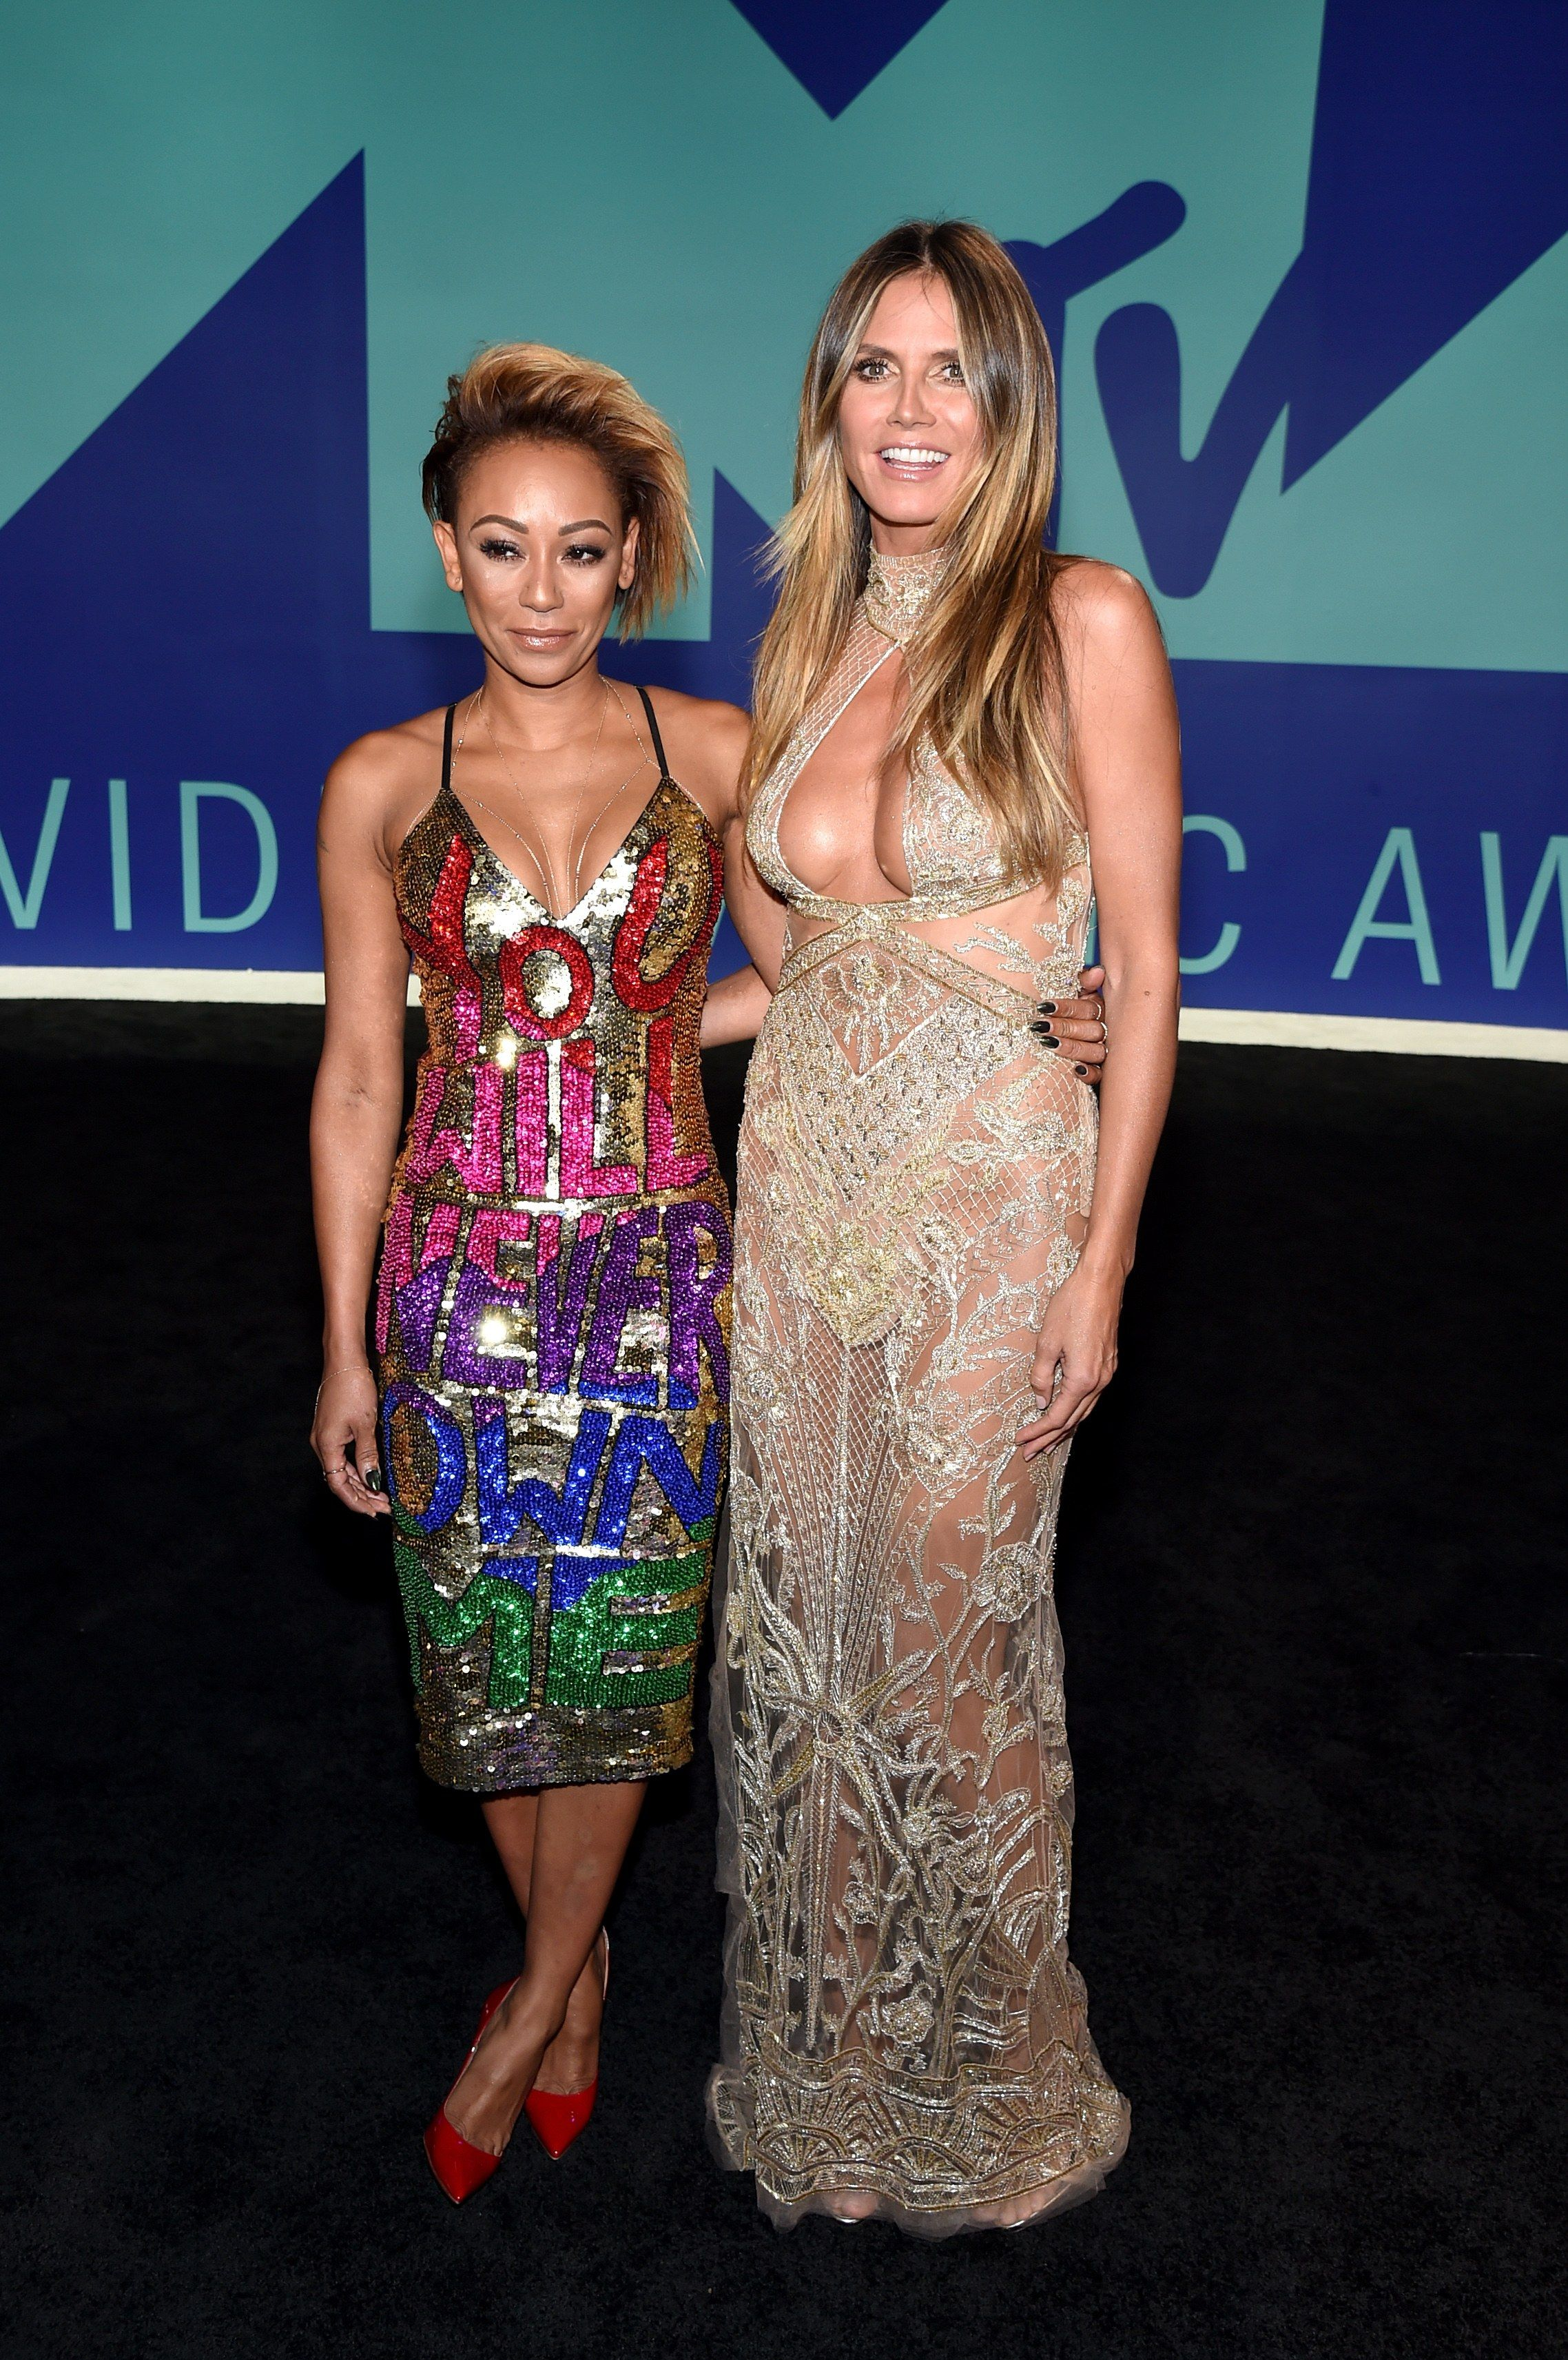 33398551f MTV VMAs 2017: Fashion—Live From the Red Carpet in 2019 | Star ...